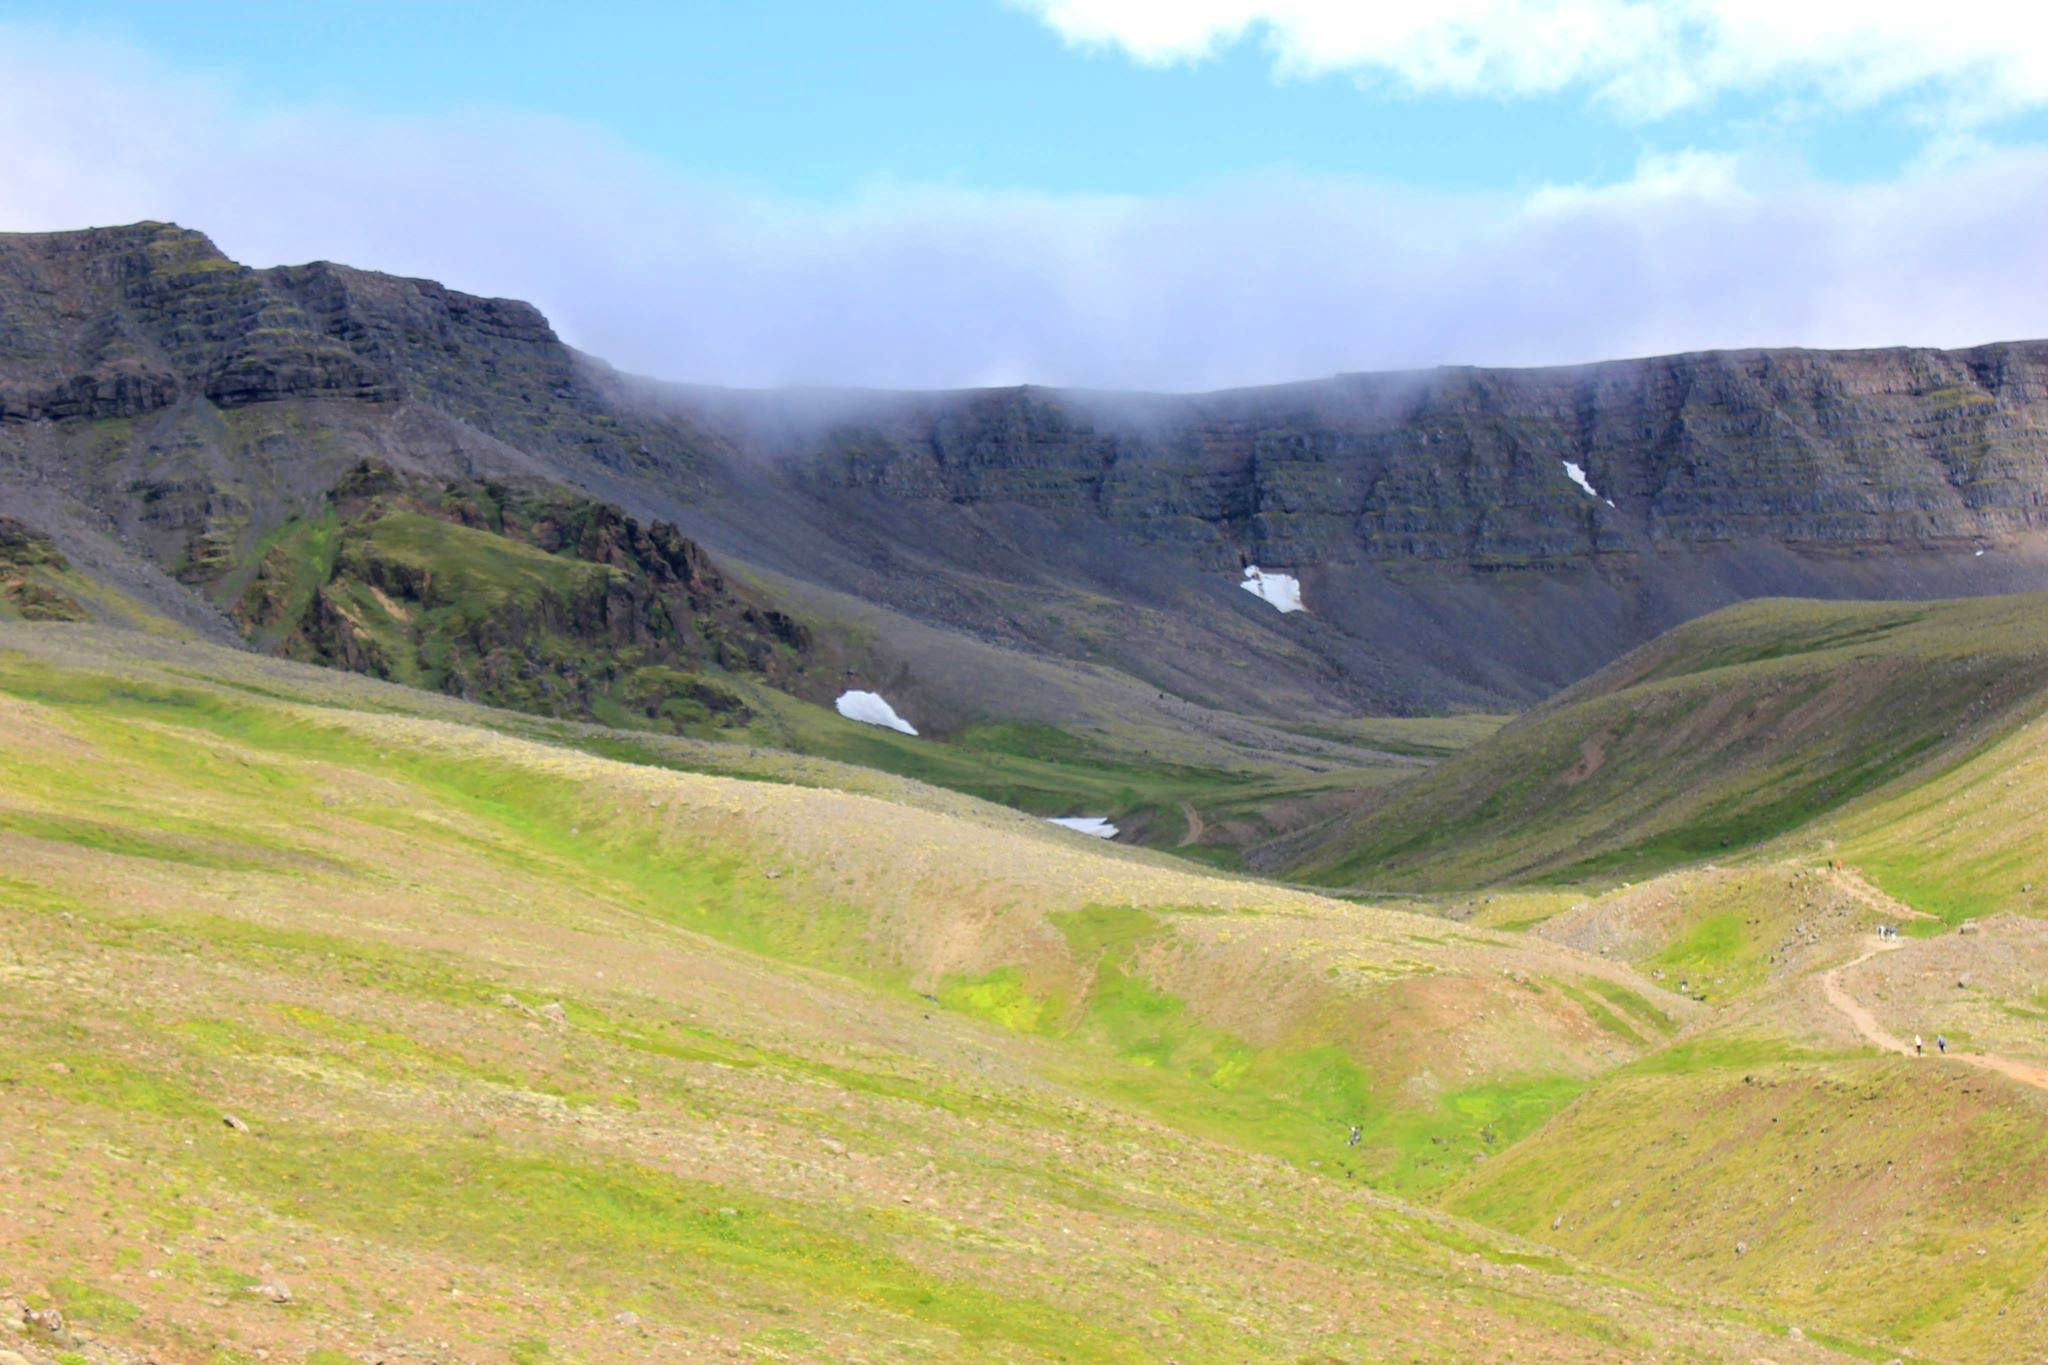 Hike on mount esja - iceland hiking